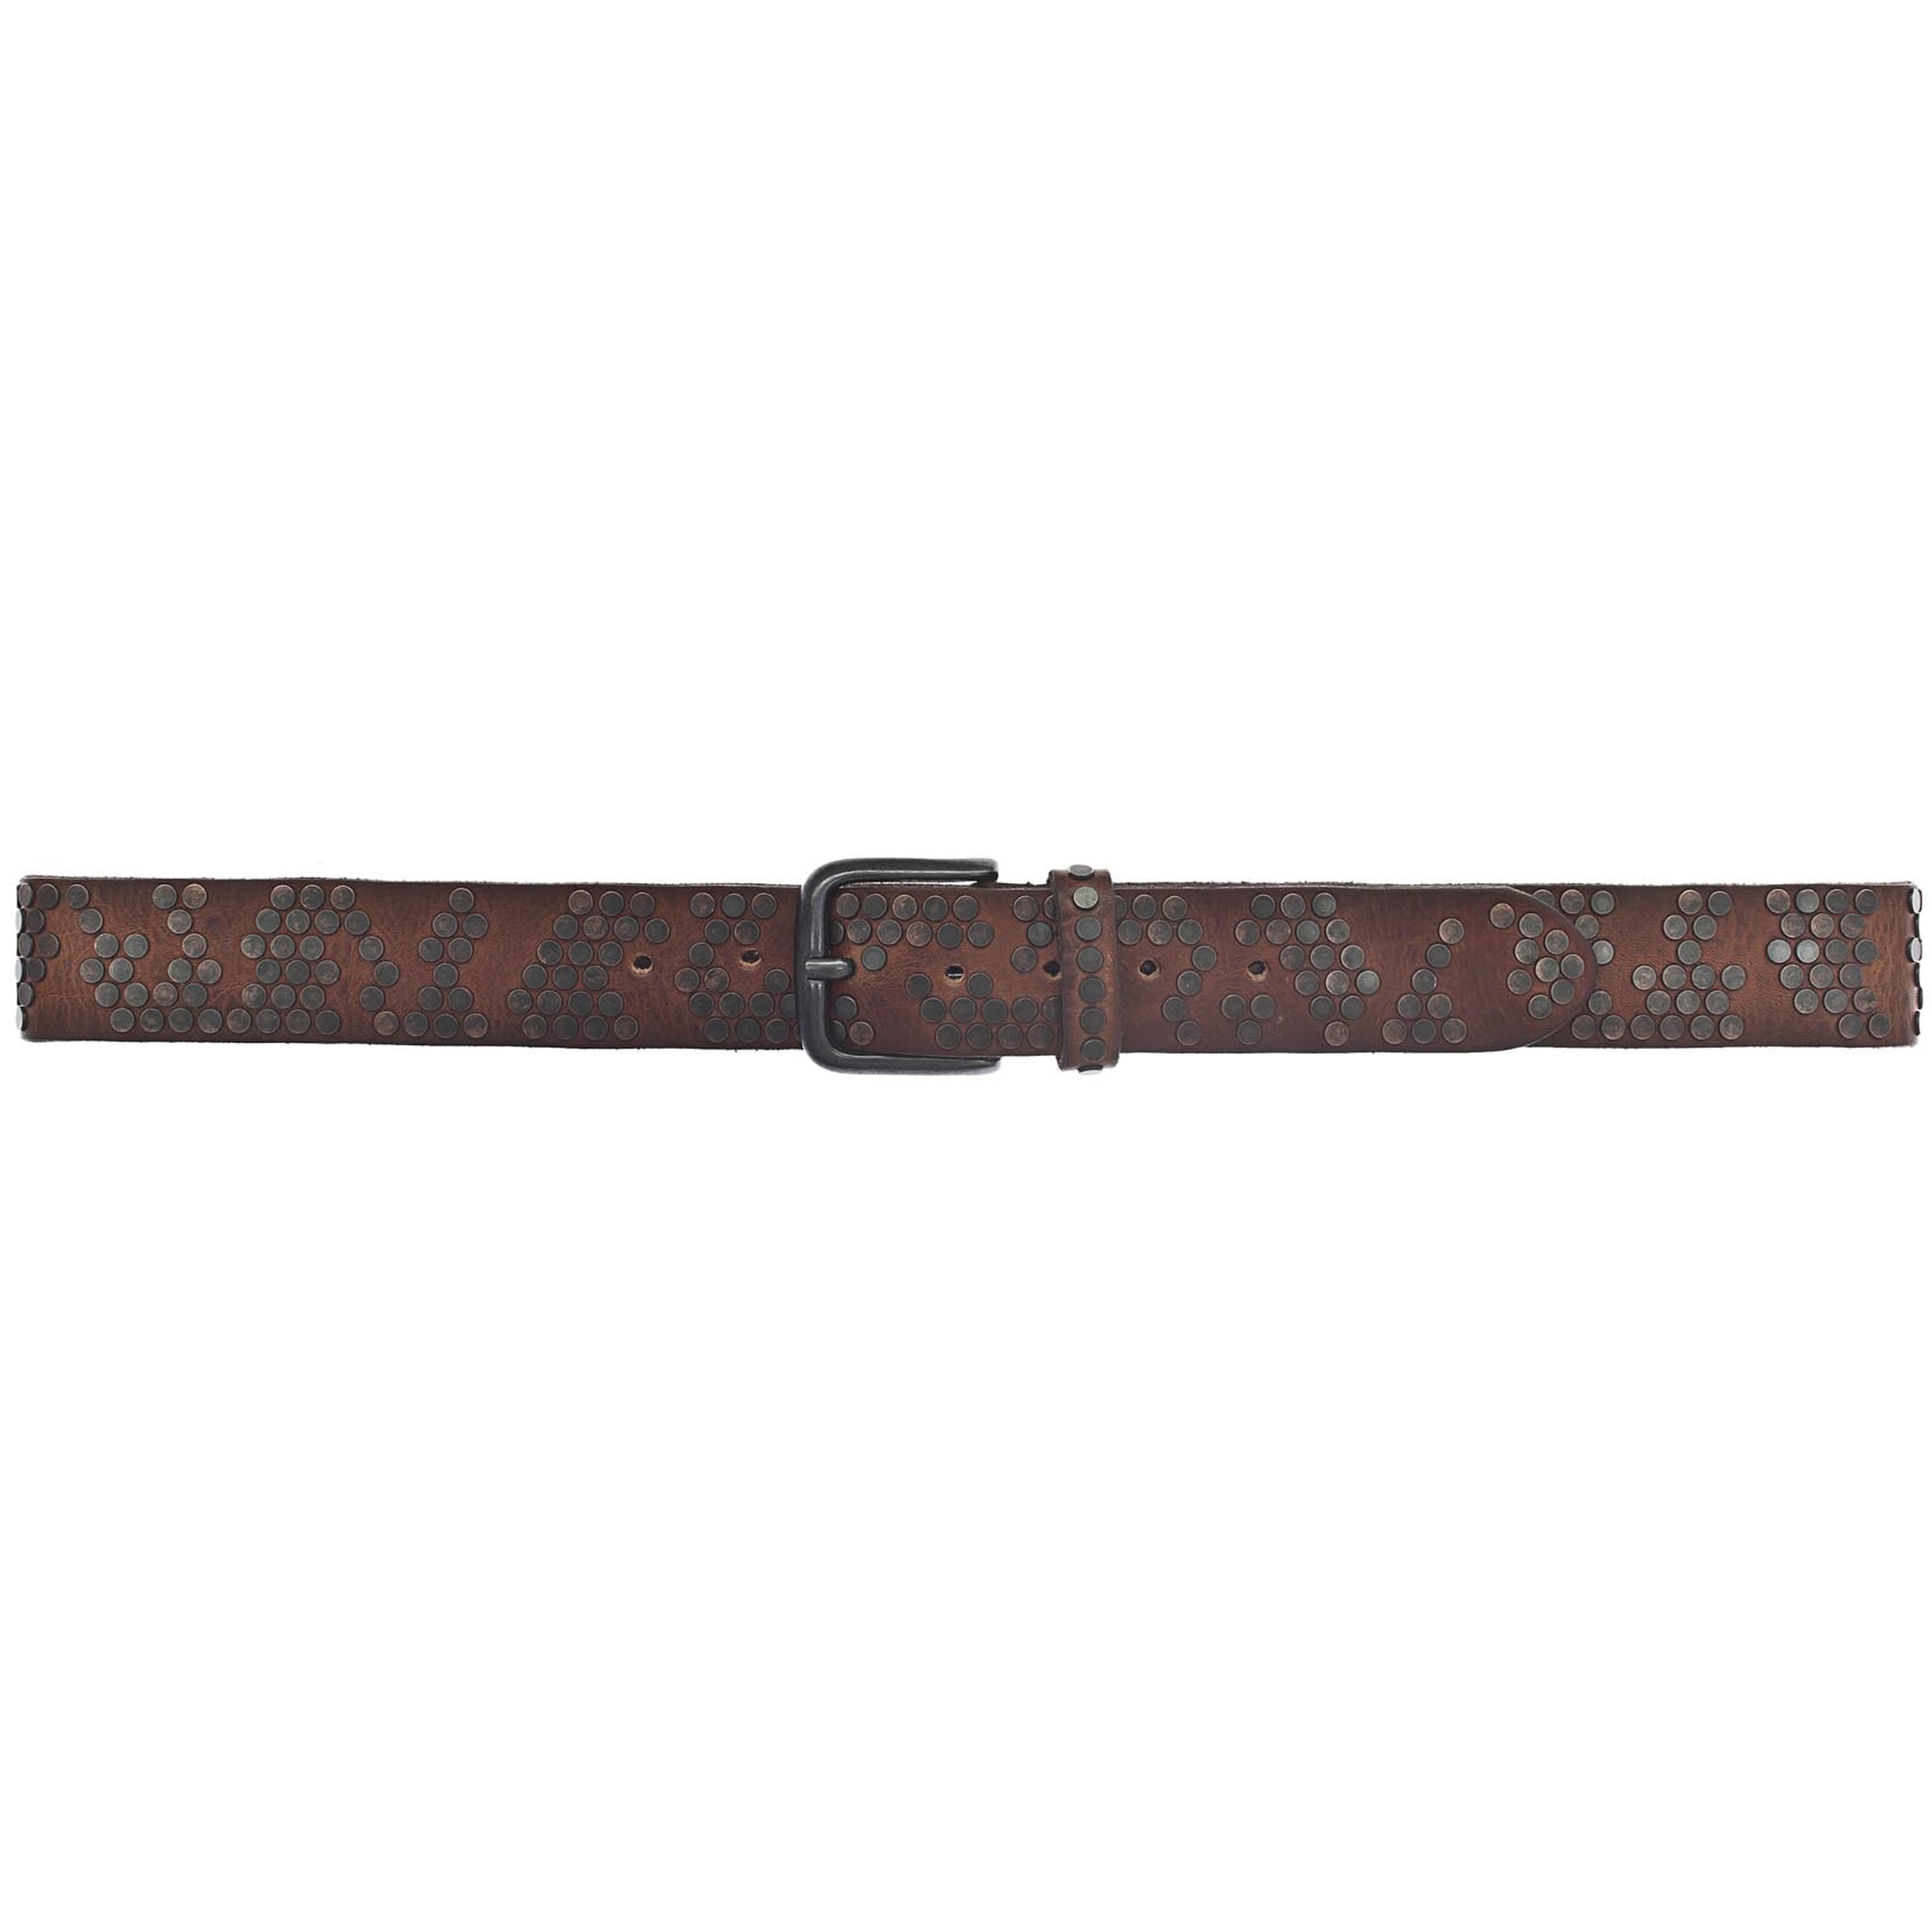 Handmade Ceinture B belt In MarronCuivre Germany En Rq54jALc3